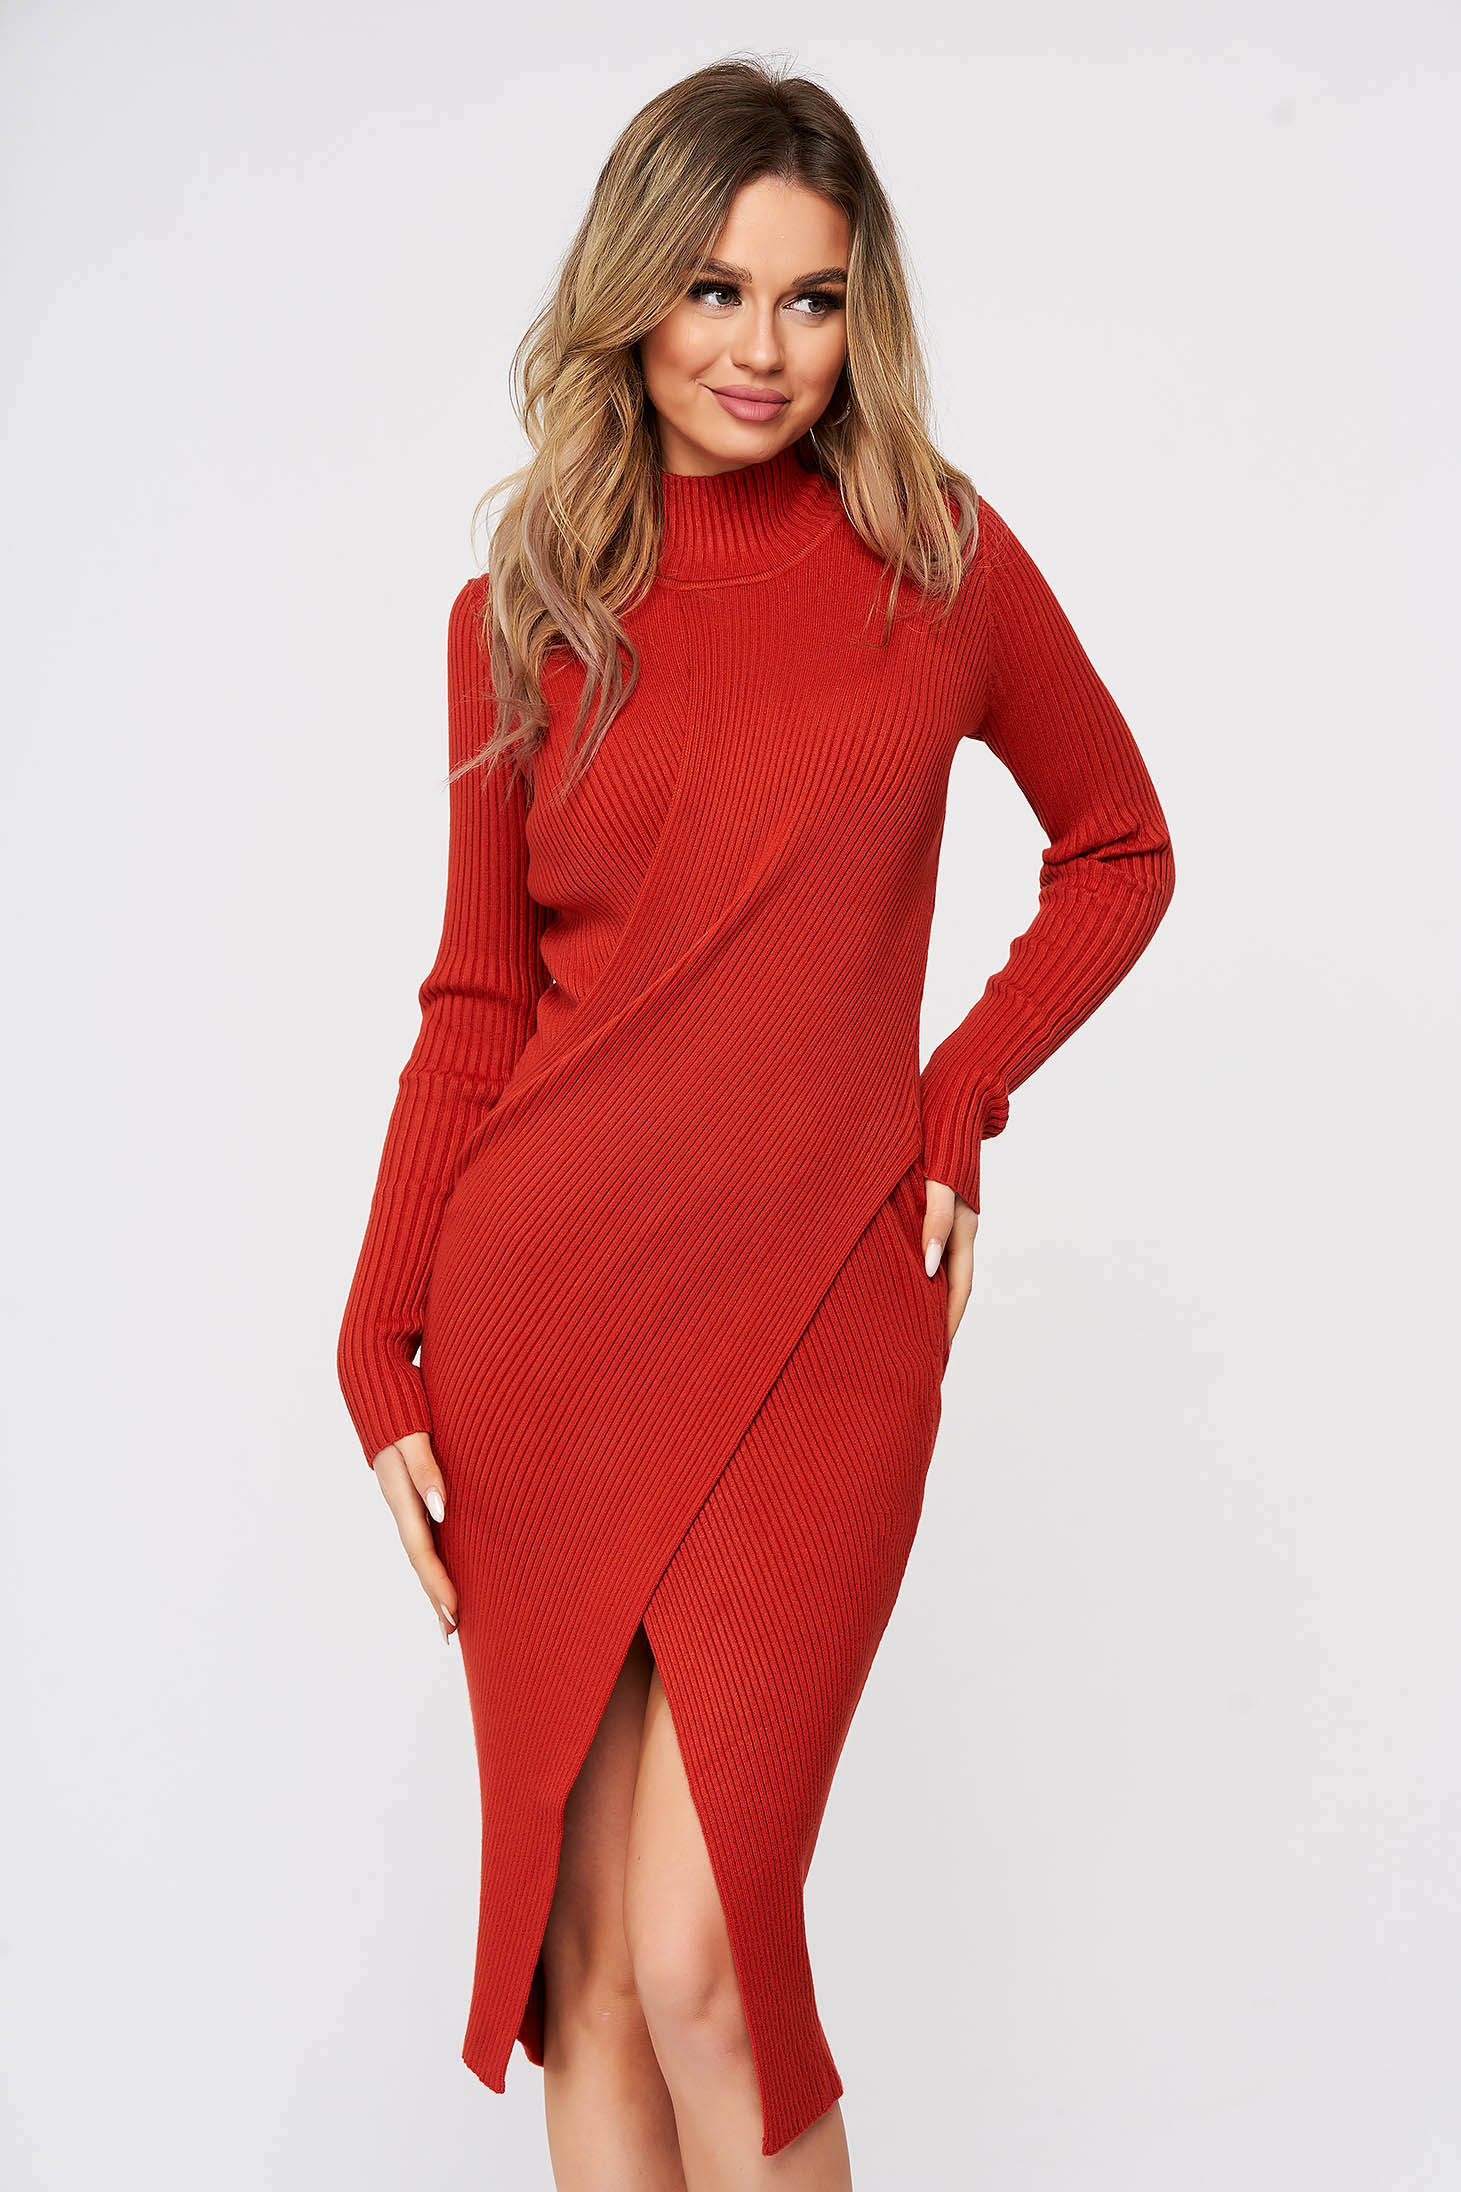 Bricky dress wrap over skirt slit knitted from striped fabric midi